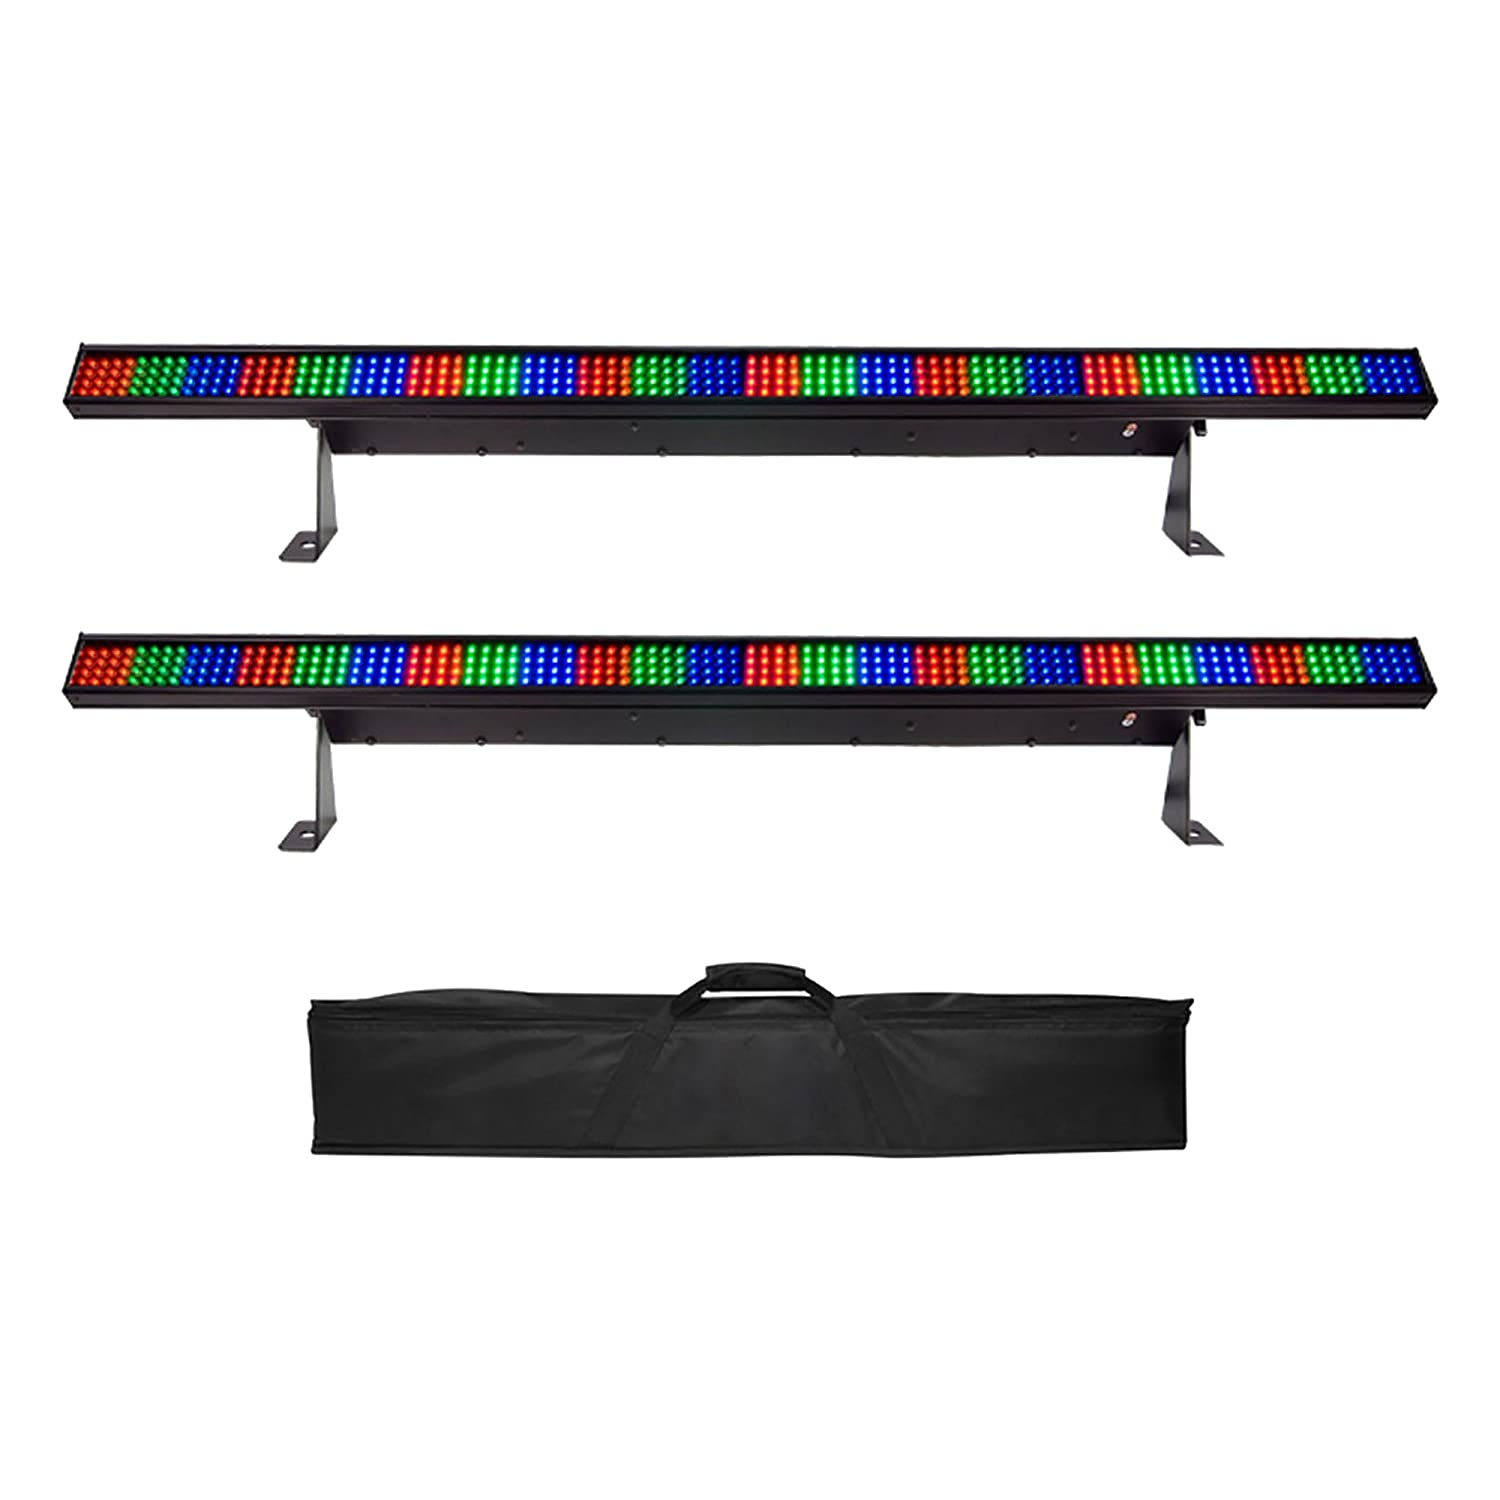 Chauvet DJ COLORstrip 4 Channel DMX LED RGB Light Bar (2 Pack) + Soft Case Bag